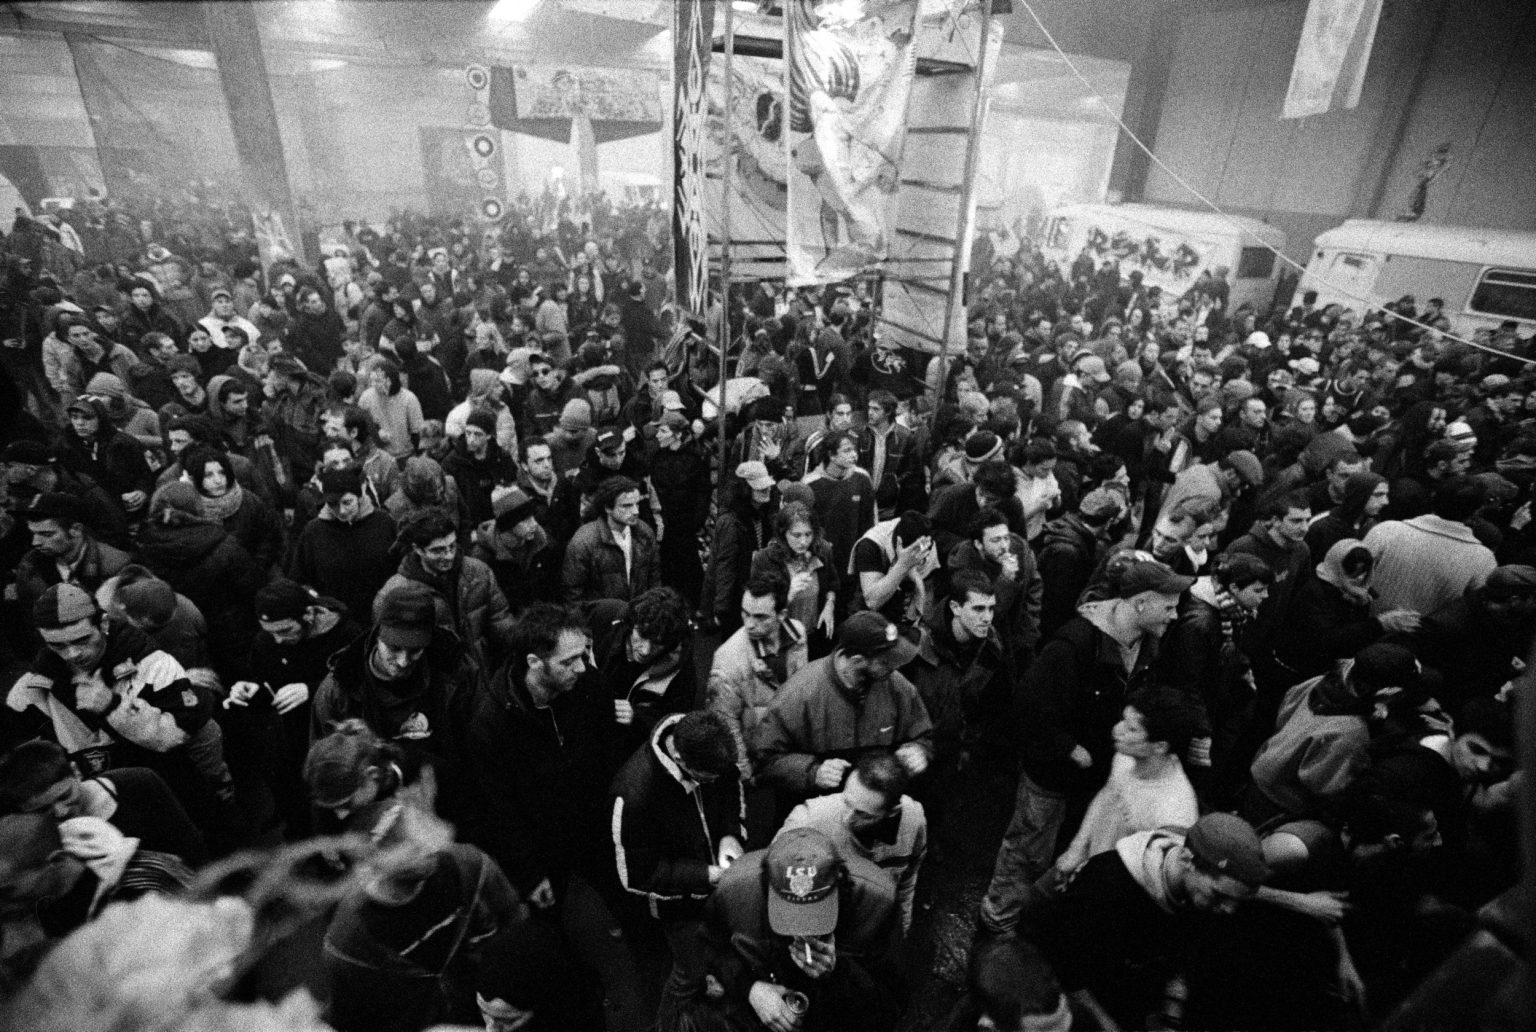 Florence, 2000 - Florence Industrial Squat Party. >< Firenze, 2002 - Sqat Party in un complesso industriale.